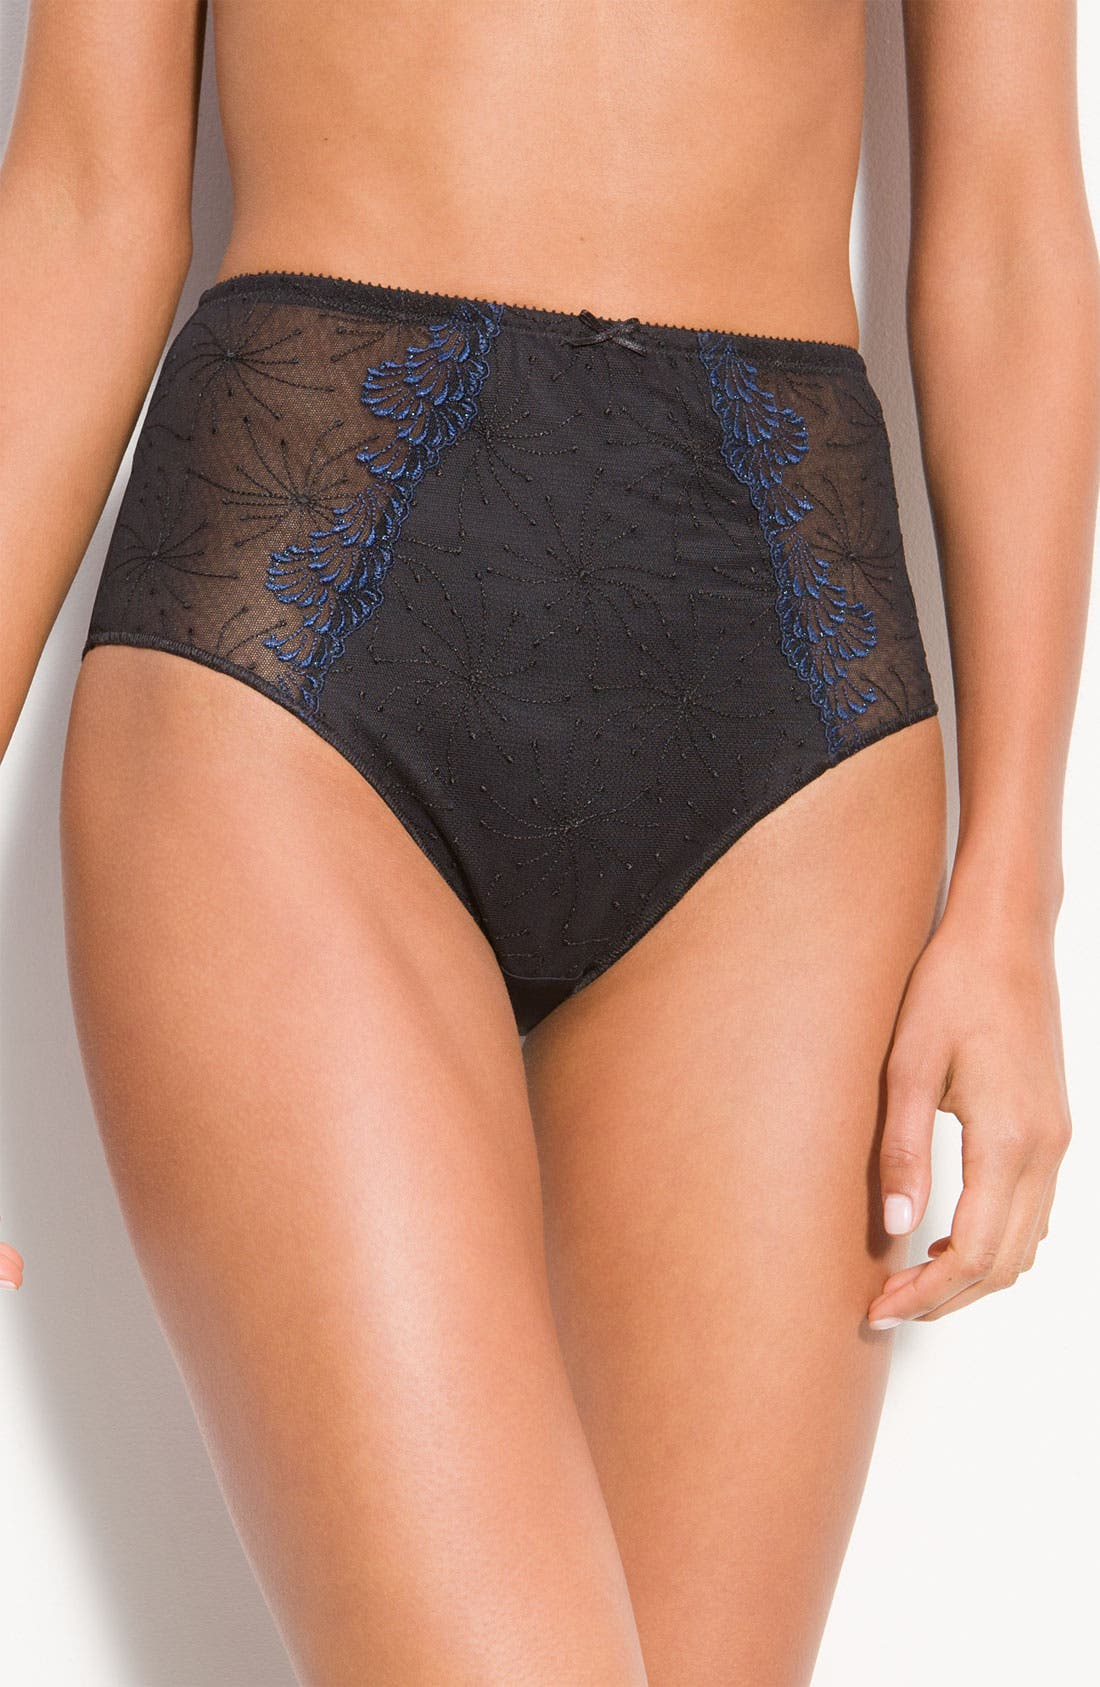 Alternate Image 1 Selected - Chantelle Intimates 'Bastille' High Waist Brief